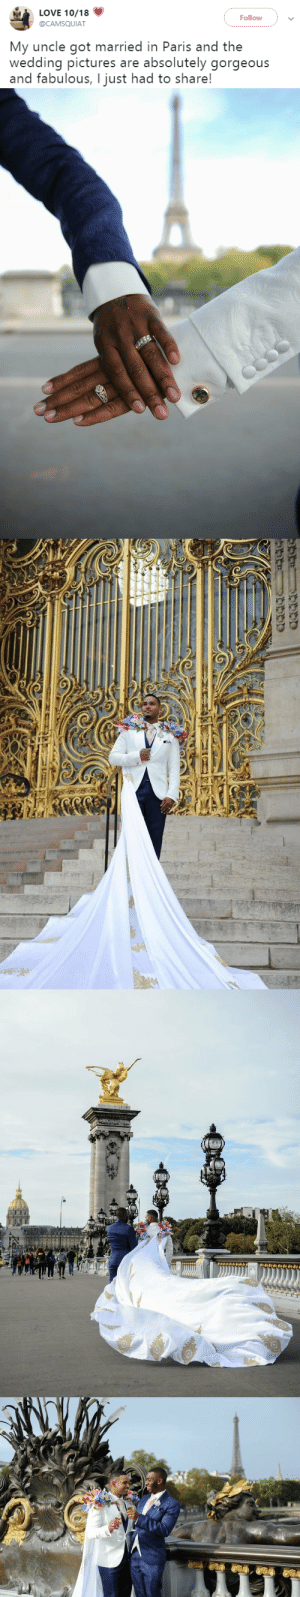 Cute, God, and Love: LOVE 10/18  Follow  @CAMSQUIAT  My uncle got married in Paris and the  wedding pictures are absolutely gorgeous  and fabulous, I just had to share! tooiconic: niggazinmoscow: Perfectly gay ❤️  That is the most amazing wedding tux alteration I have ever seen.    Oh my god that's so cute.Me at the tailor: gimme wedding capeTailor: what Me: W E D D I N G  C A P E